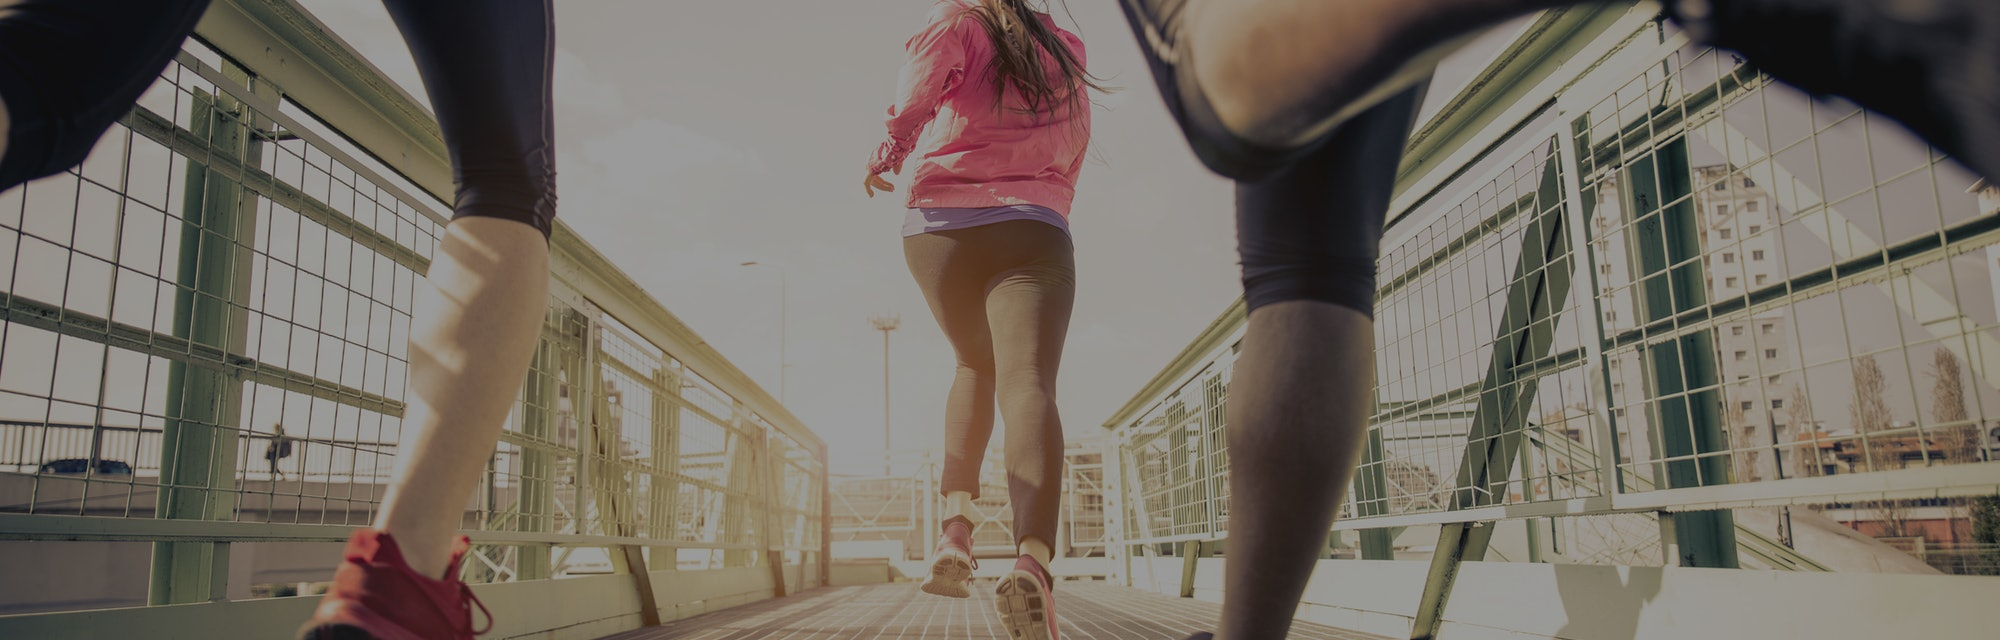 Three runners sprinting outdoors - Sportive people training in a urban area, healthy lifestyle and sport concepts